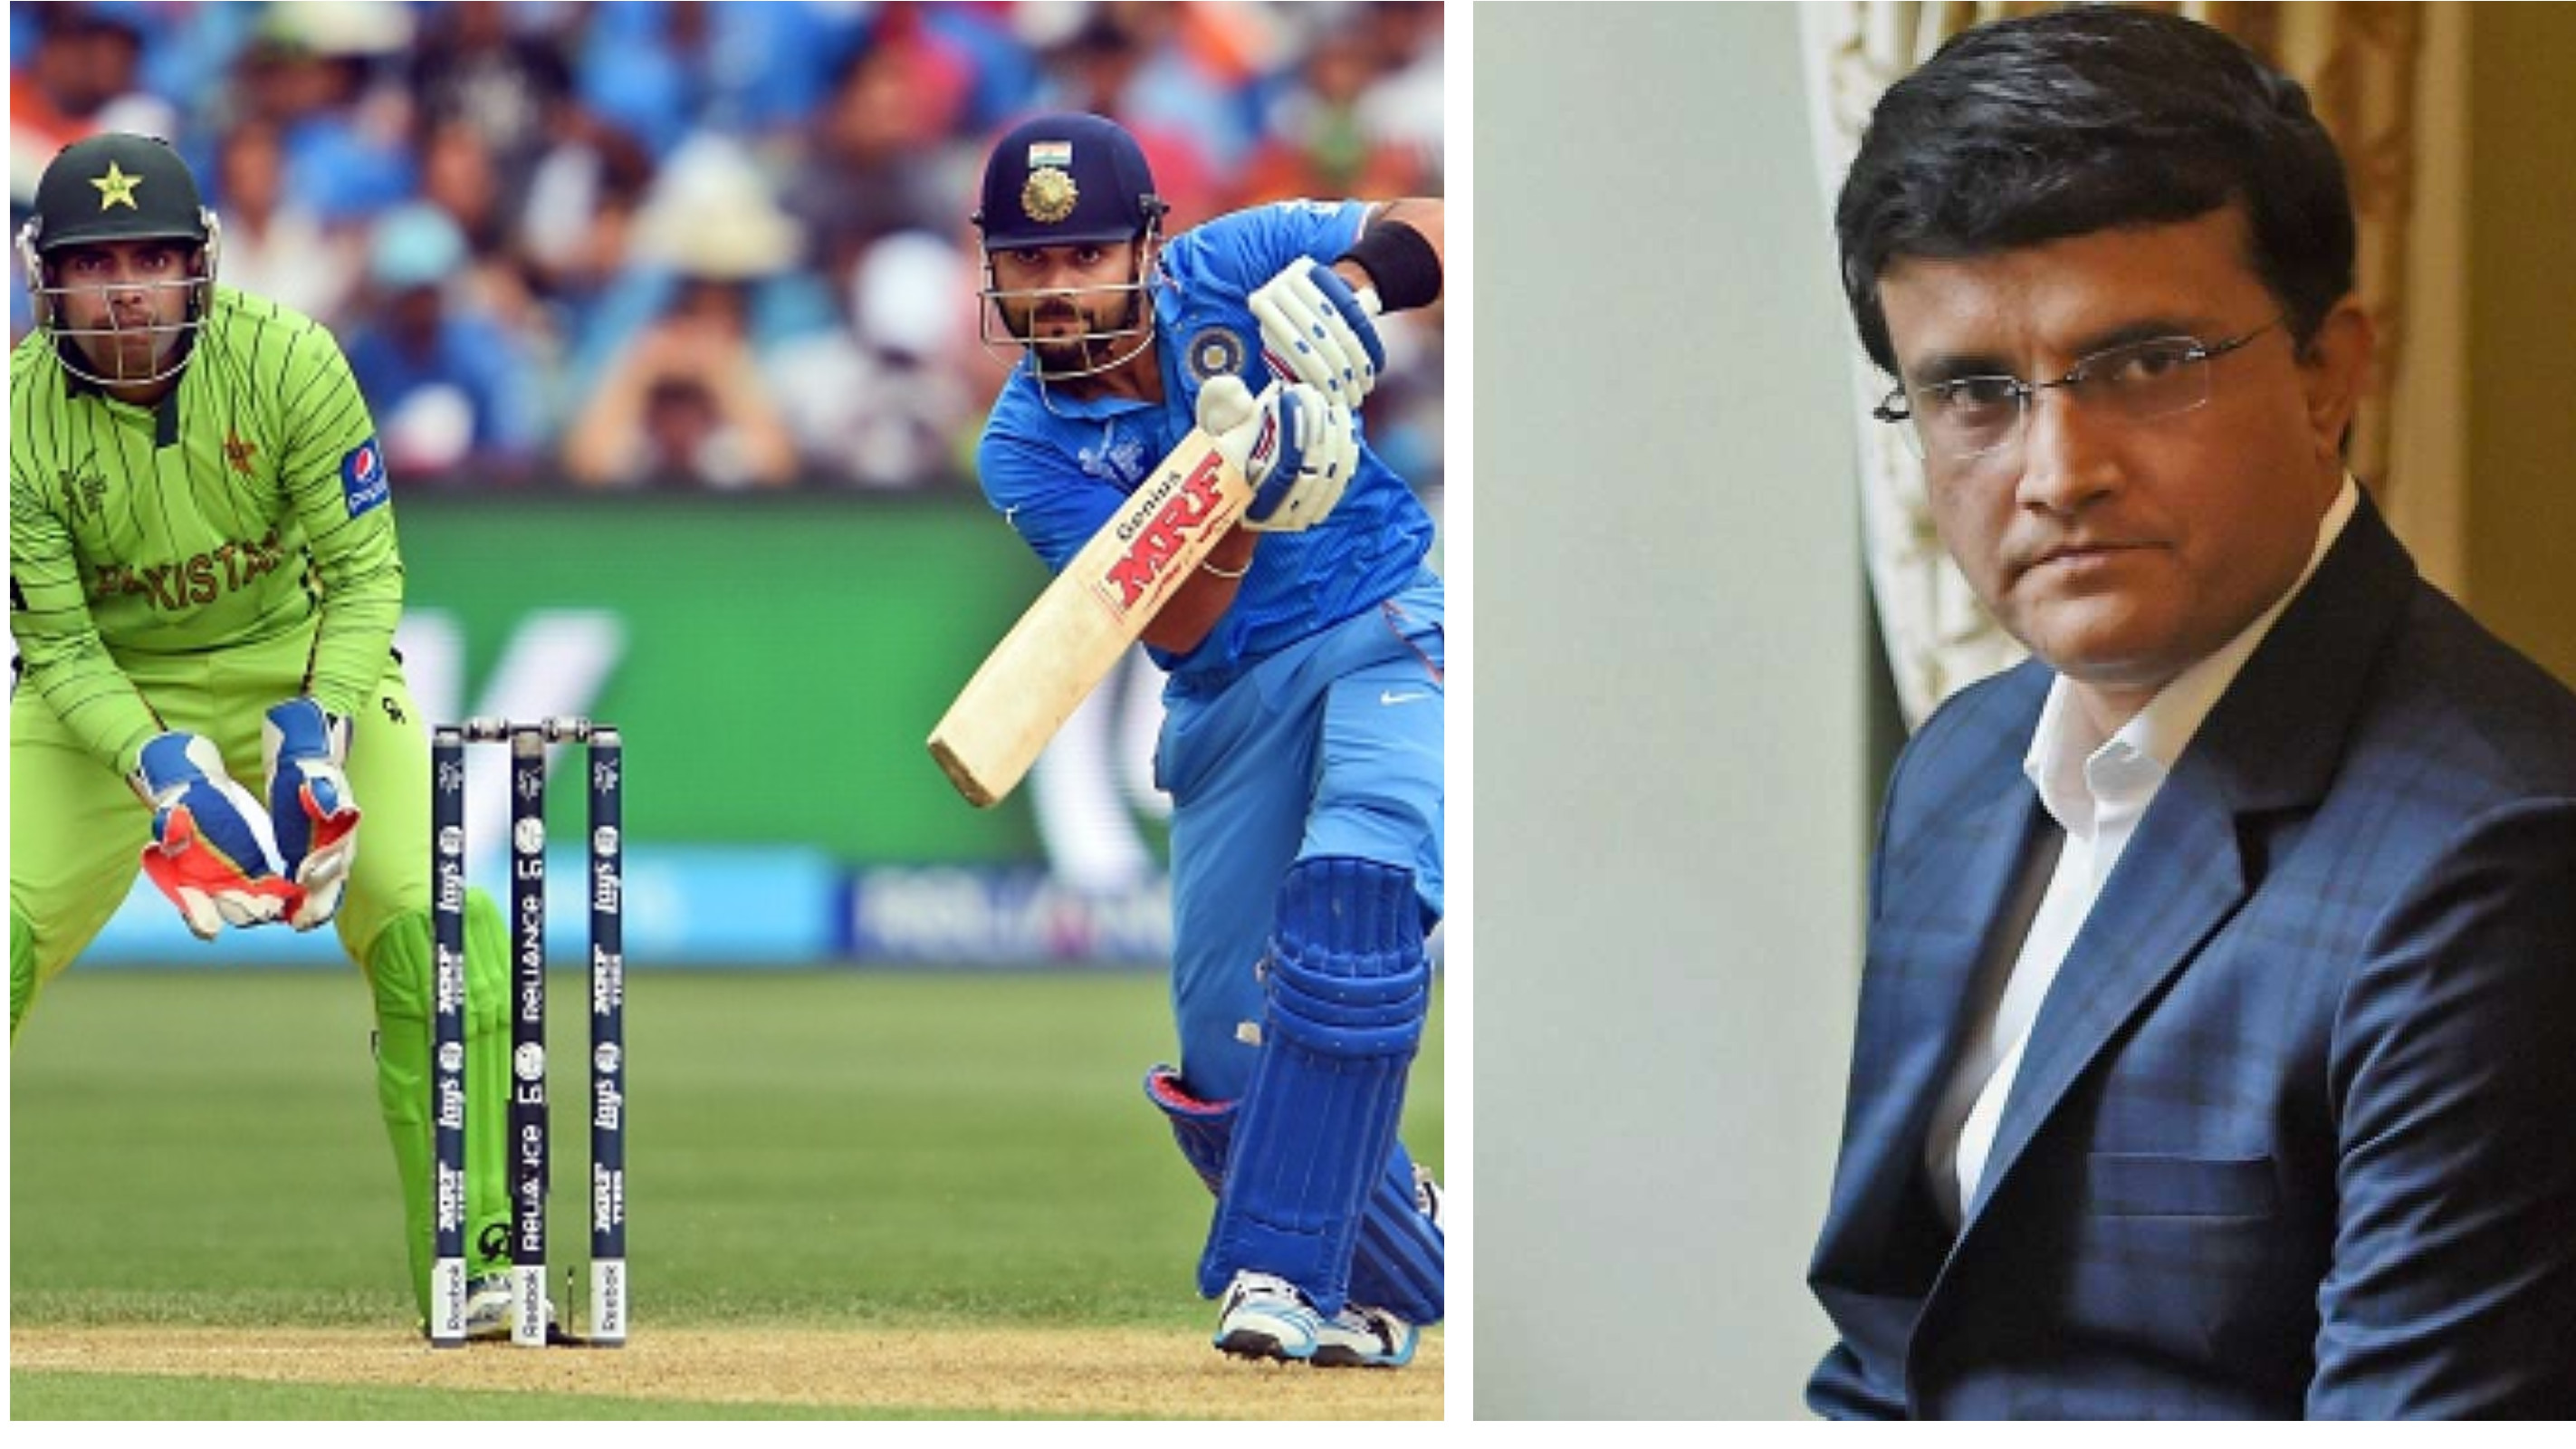 Asia Cup 2018: India a better team than Pakistan despite Kohli's absence, says Sourav Ganguly